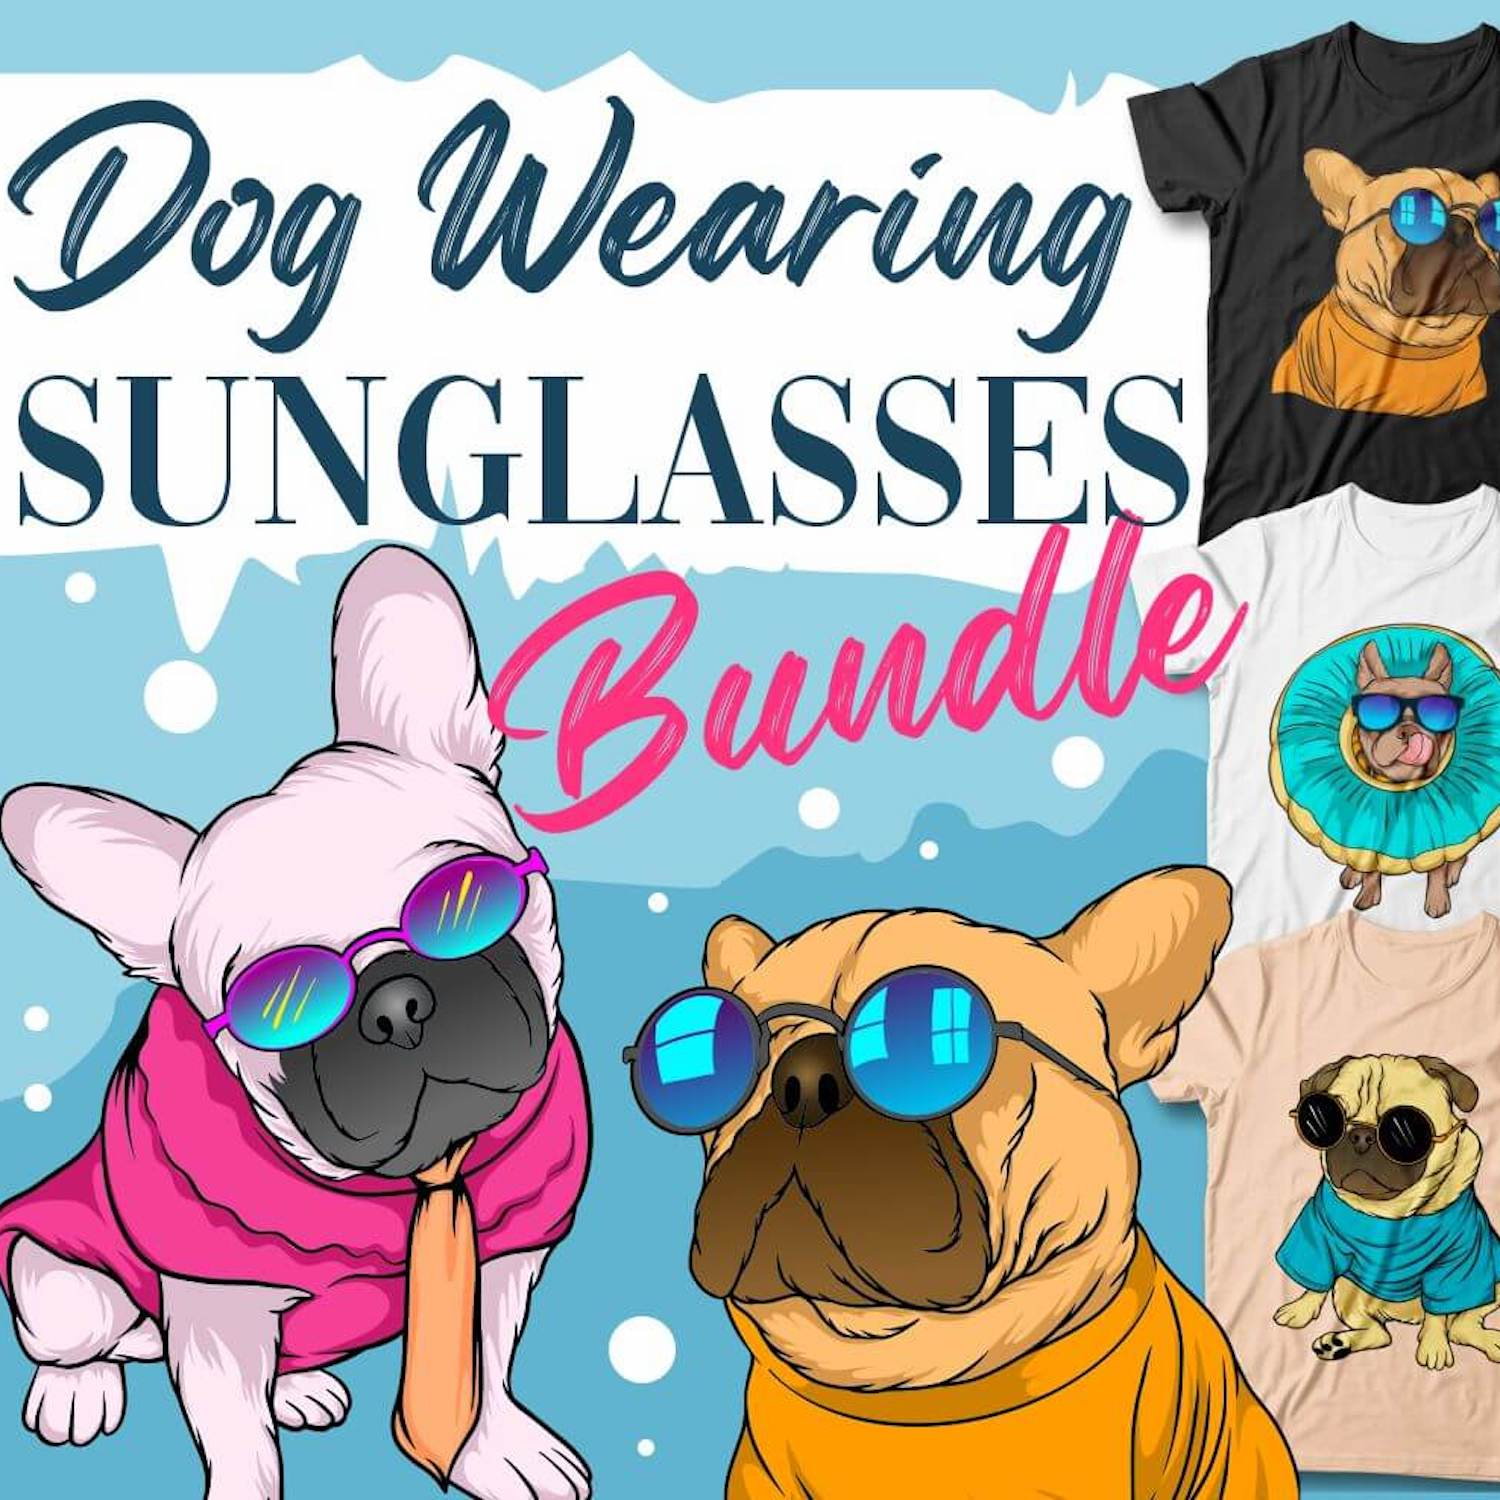 Dog Wearing Sunglasses T-Shirt Designs cover image.